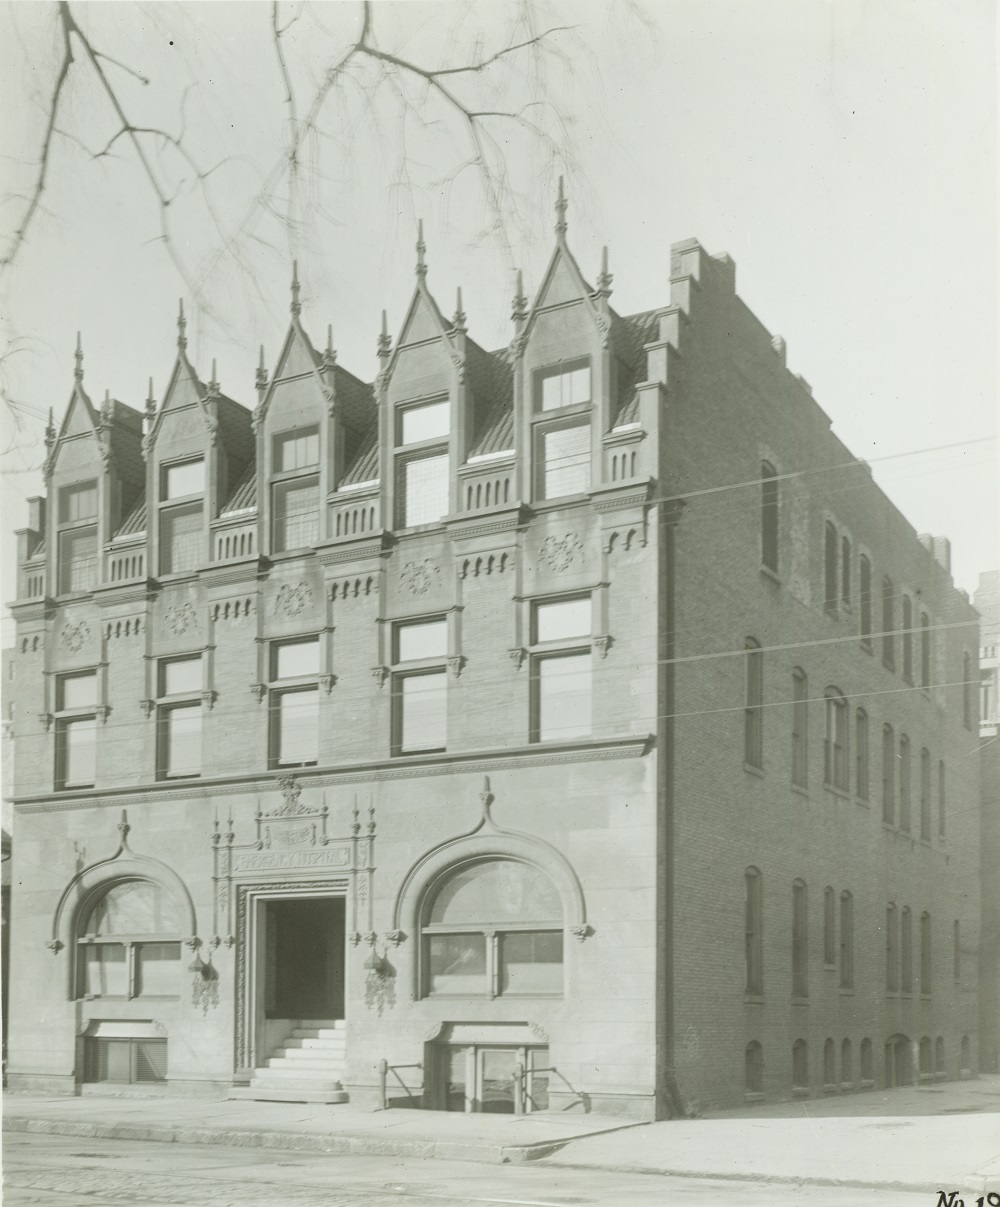 Photograph of the entrance of Johnston Emergency Hospital. This building was used from 1894 until 1931, when the hospital moved to a new location on the south side of Milwaukee.